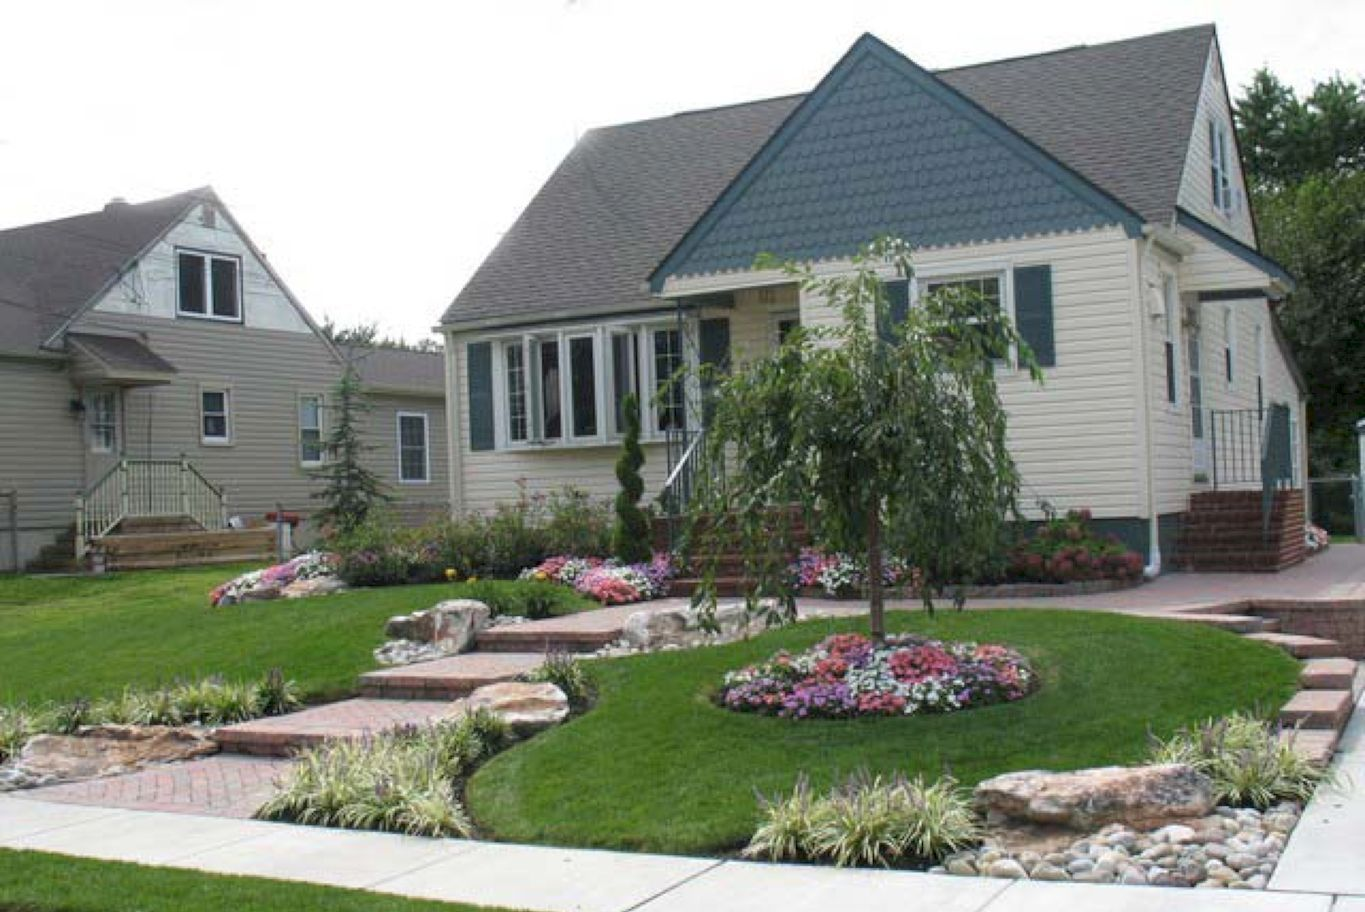 Landscaping ideas for front yard with porch   Fabulous Front Yard Walkway Landscaping Ideas  Front yard